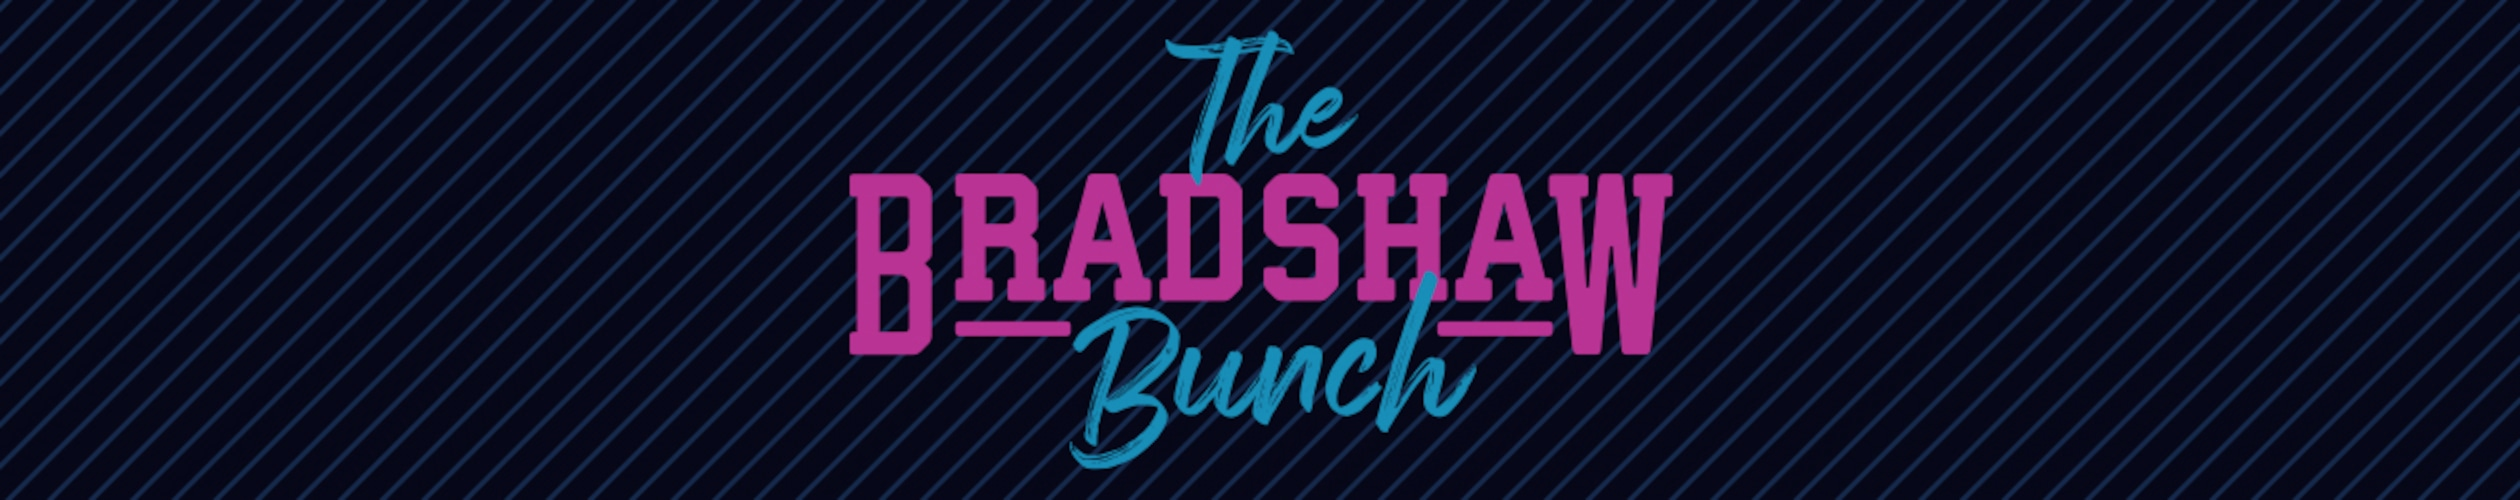 The Bradshaw Bunch Show Page Assets